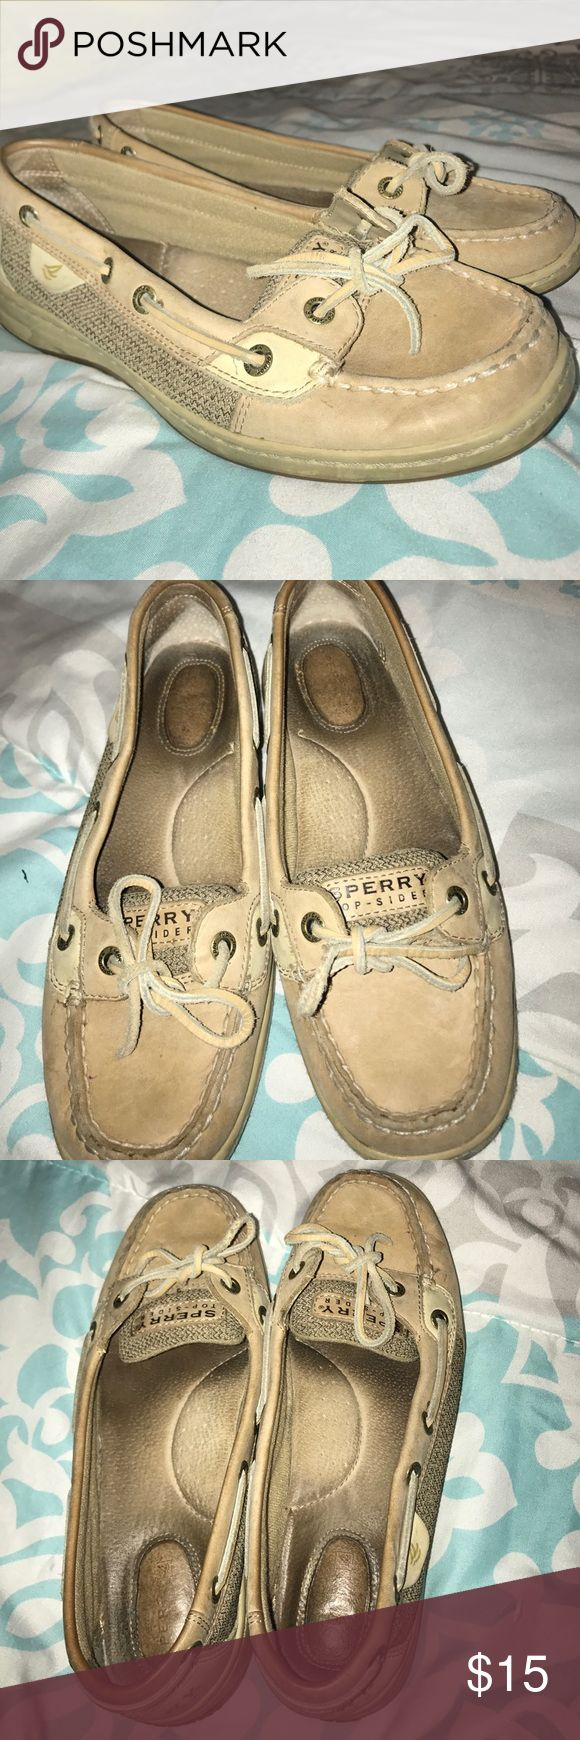 Original Sperrys used but good condition as shown in pics, very clean bottoms and most of wear is on the inside. fits a little big Sperry Top-Sider Shoes